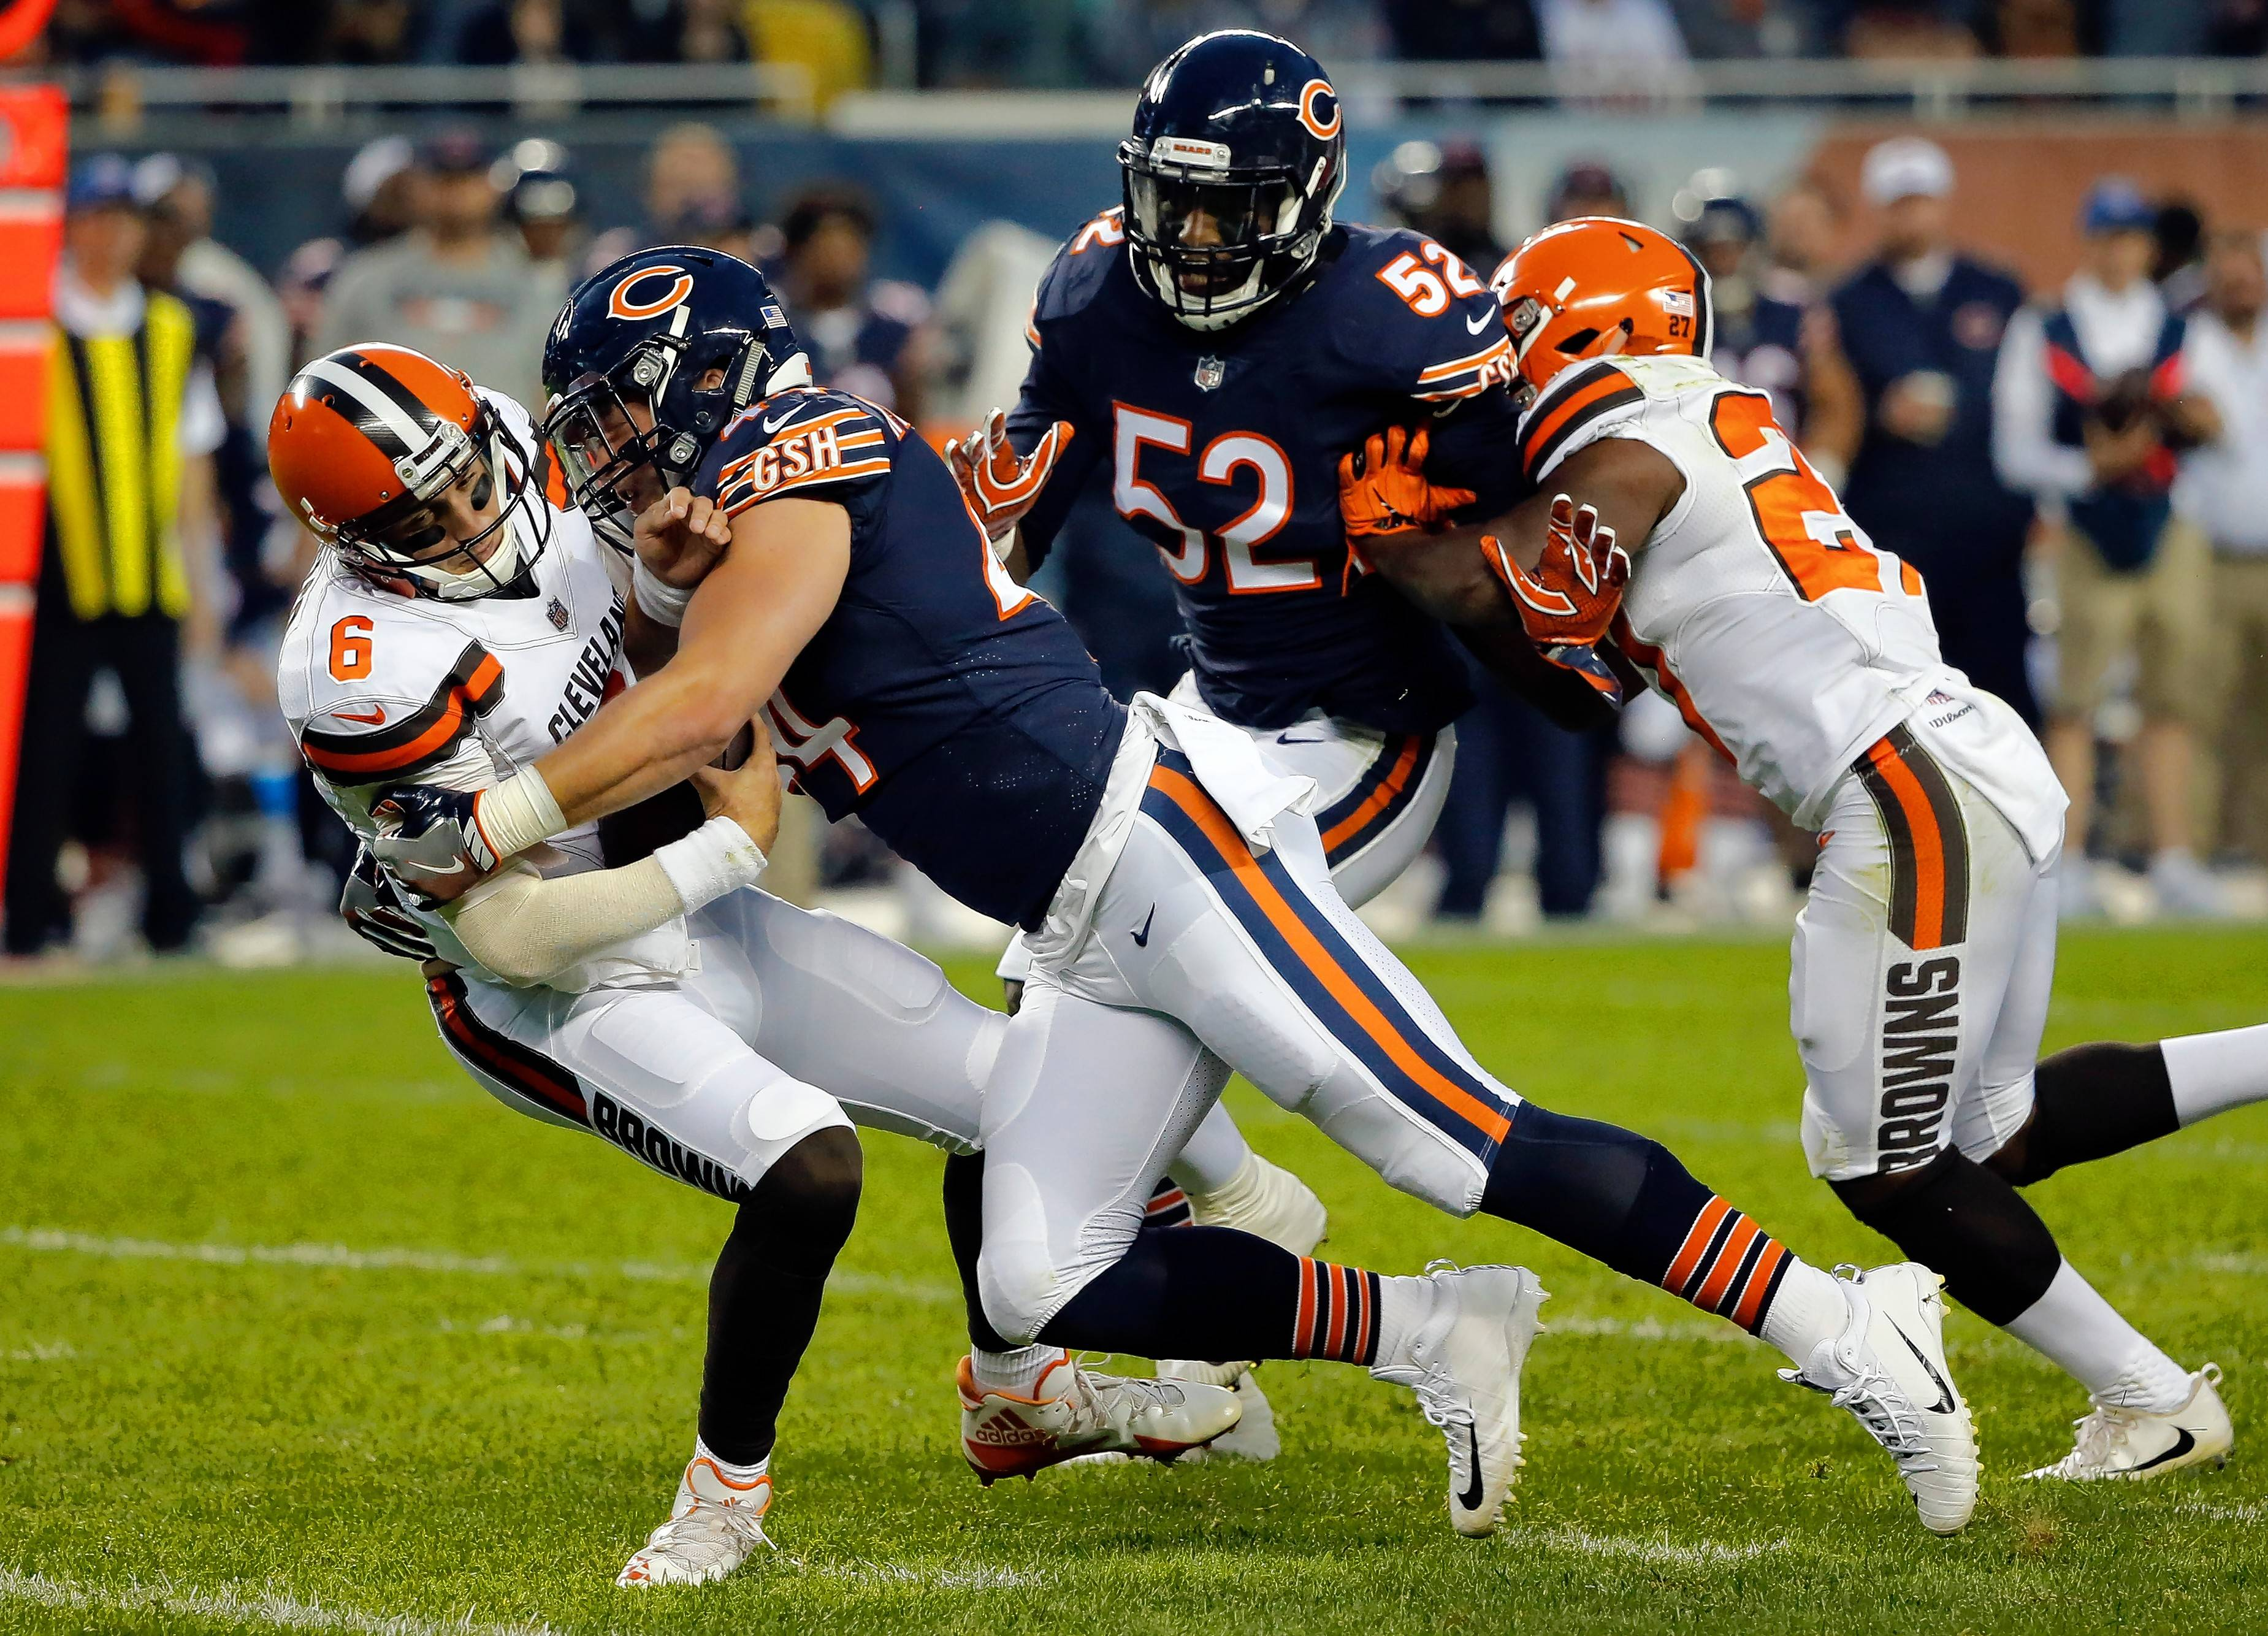 Chicago Bears inside linebacker Nick Kwiatkoski (44) sacks Cleveland Browns quarterback Cody Kessler (6) during the first half of an NFL football game, Thursday, Aug. 31, 2017, in Chicago.